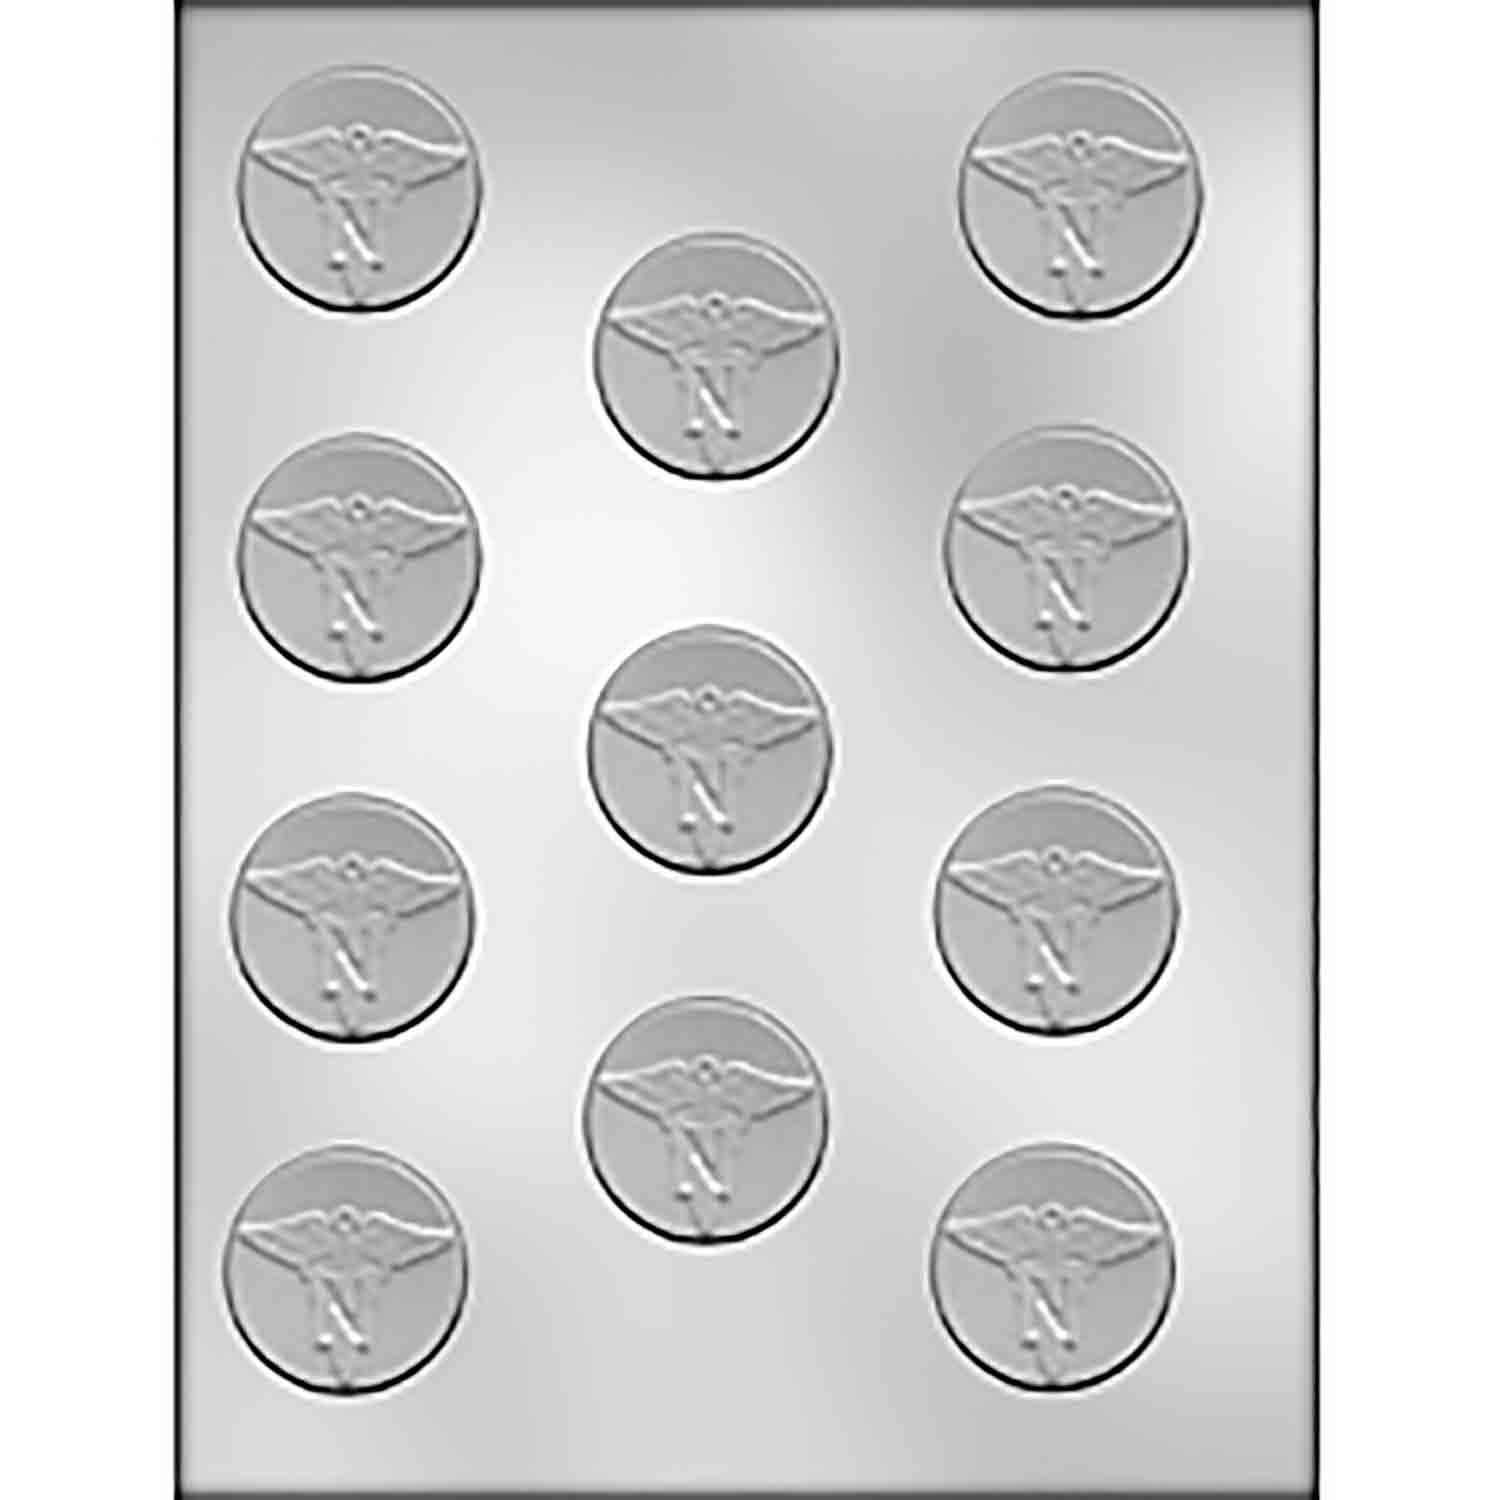 Nurse Mint Chocolate Candy Mold